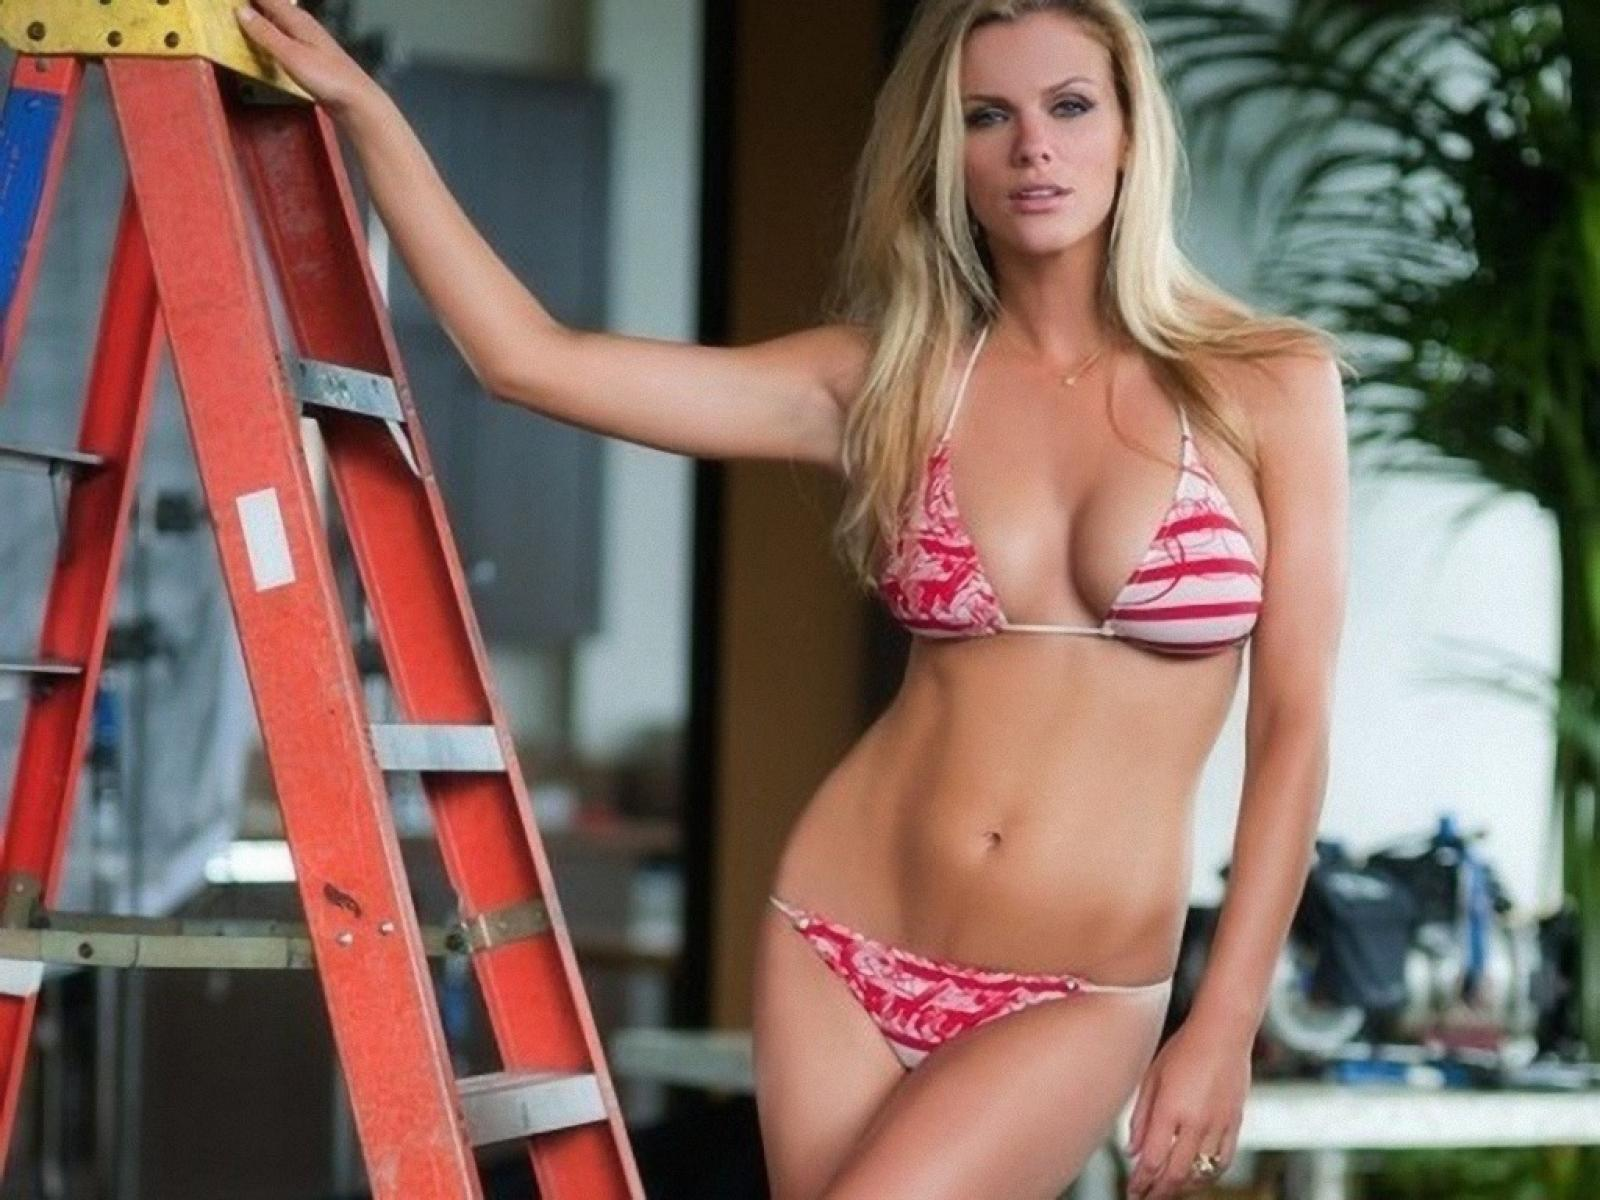 brooklyn_decker_2011_63699-1600x1200